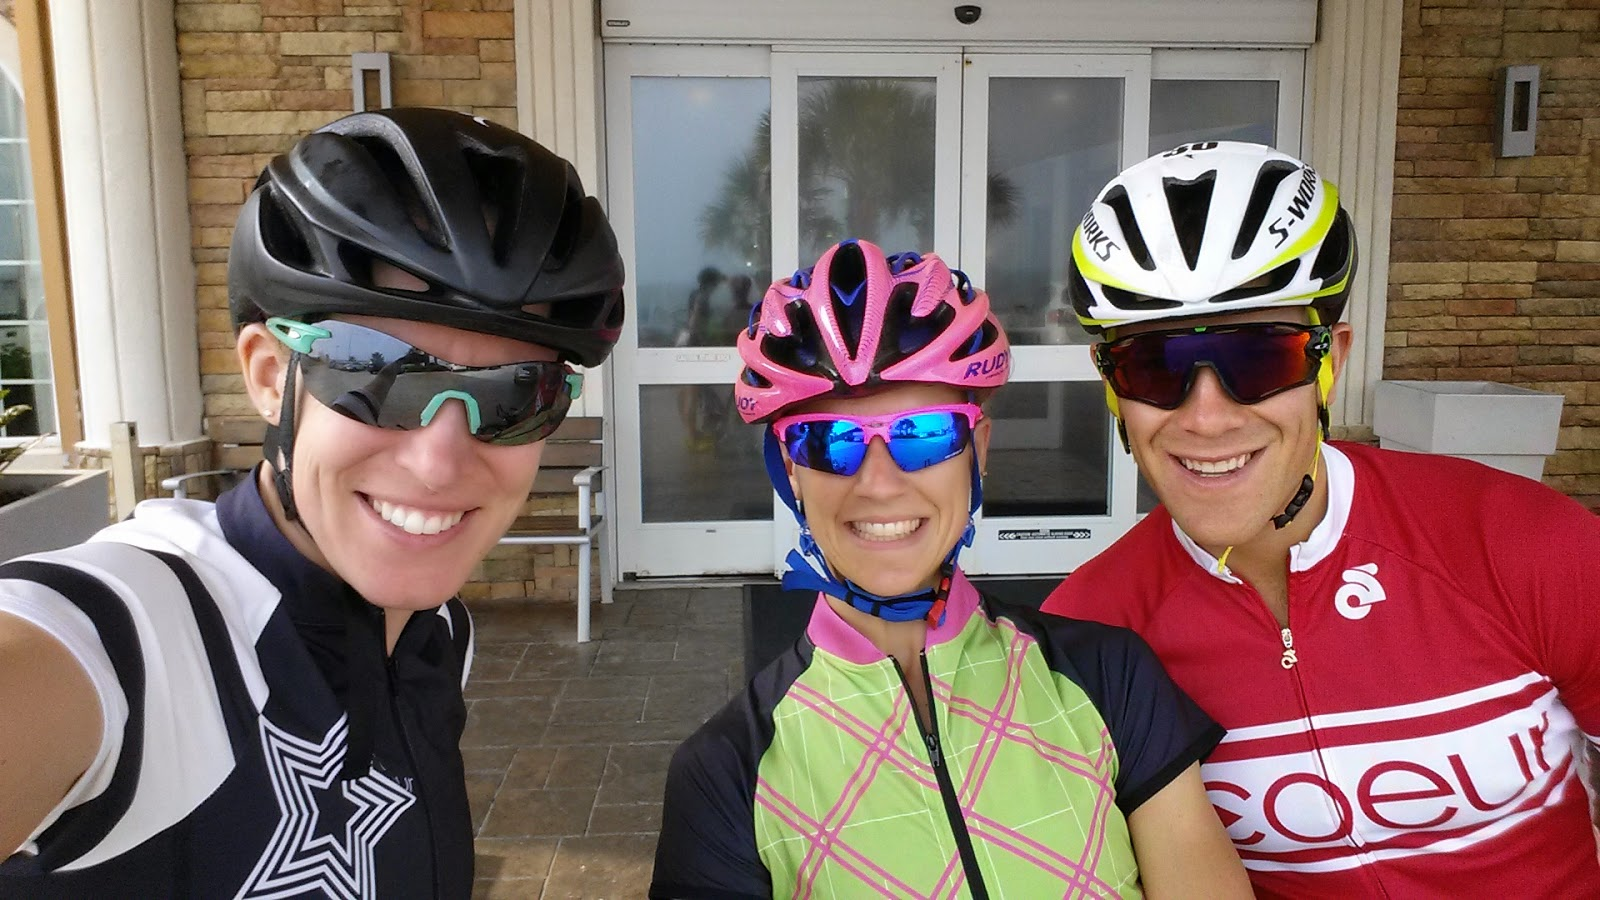 Heading out for a ride, in Coeur Sports style. (photo cred: Beth Shutt)